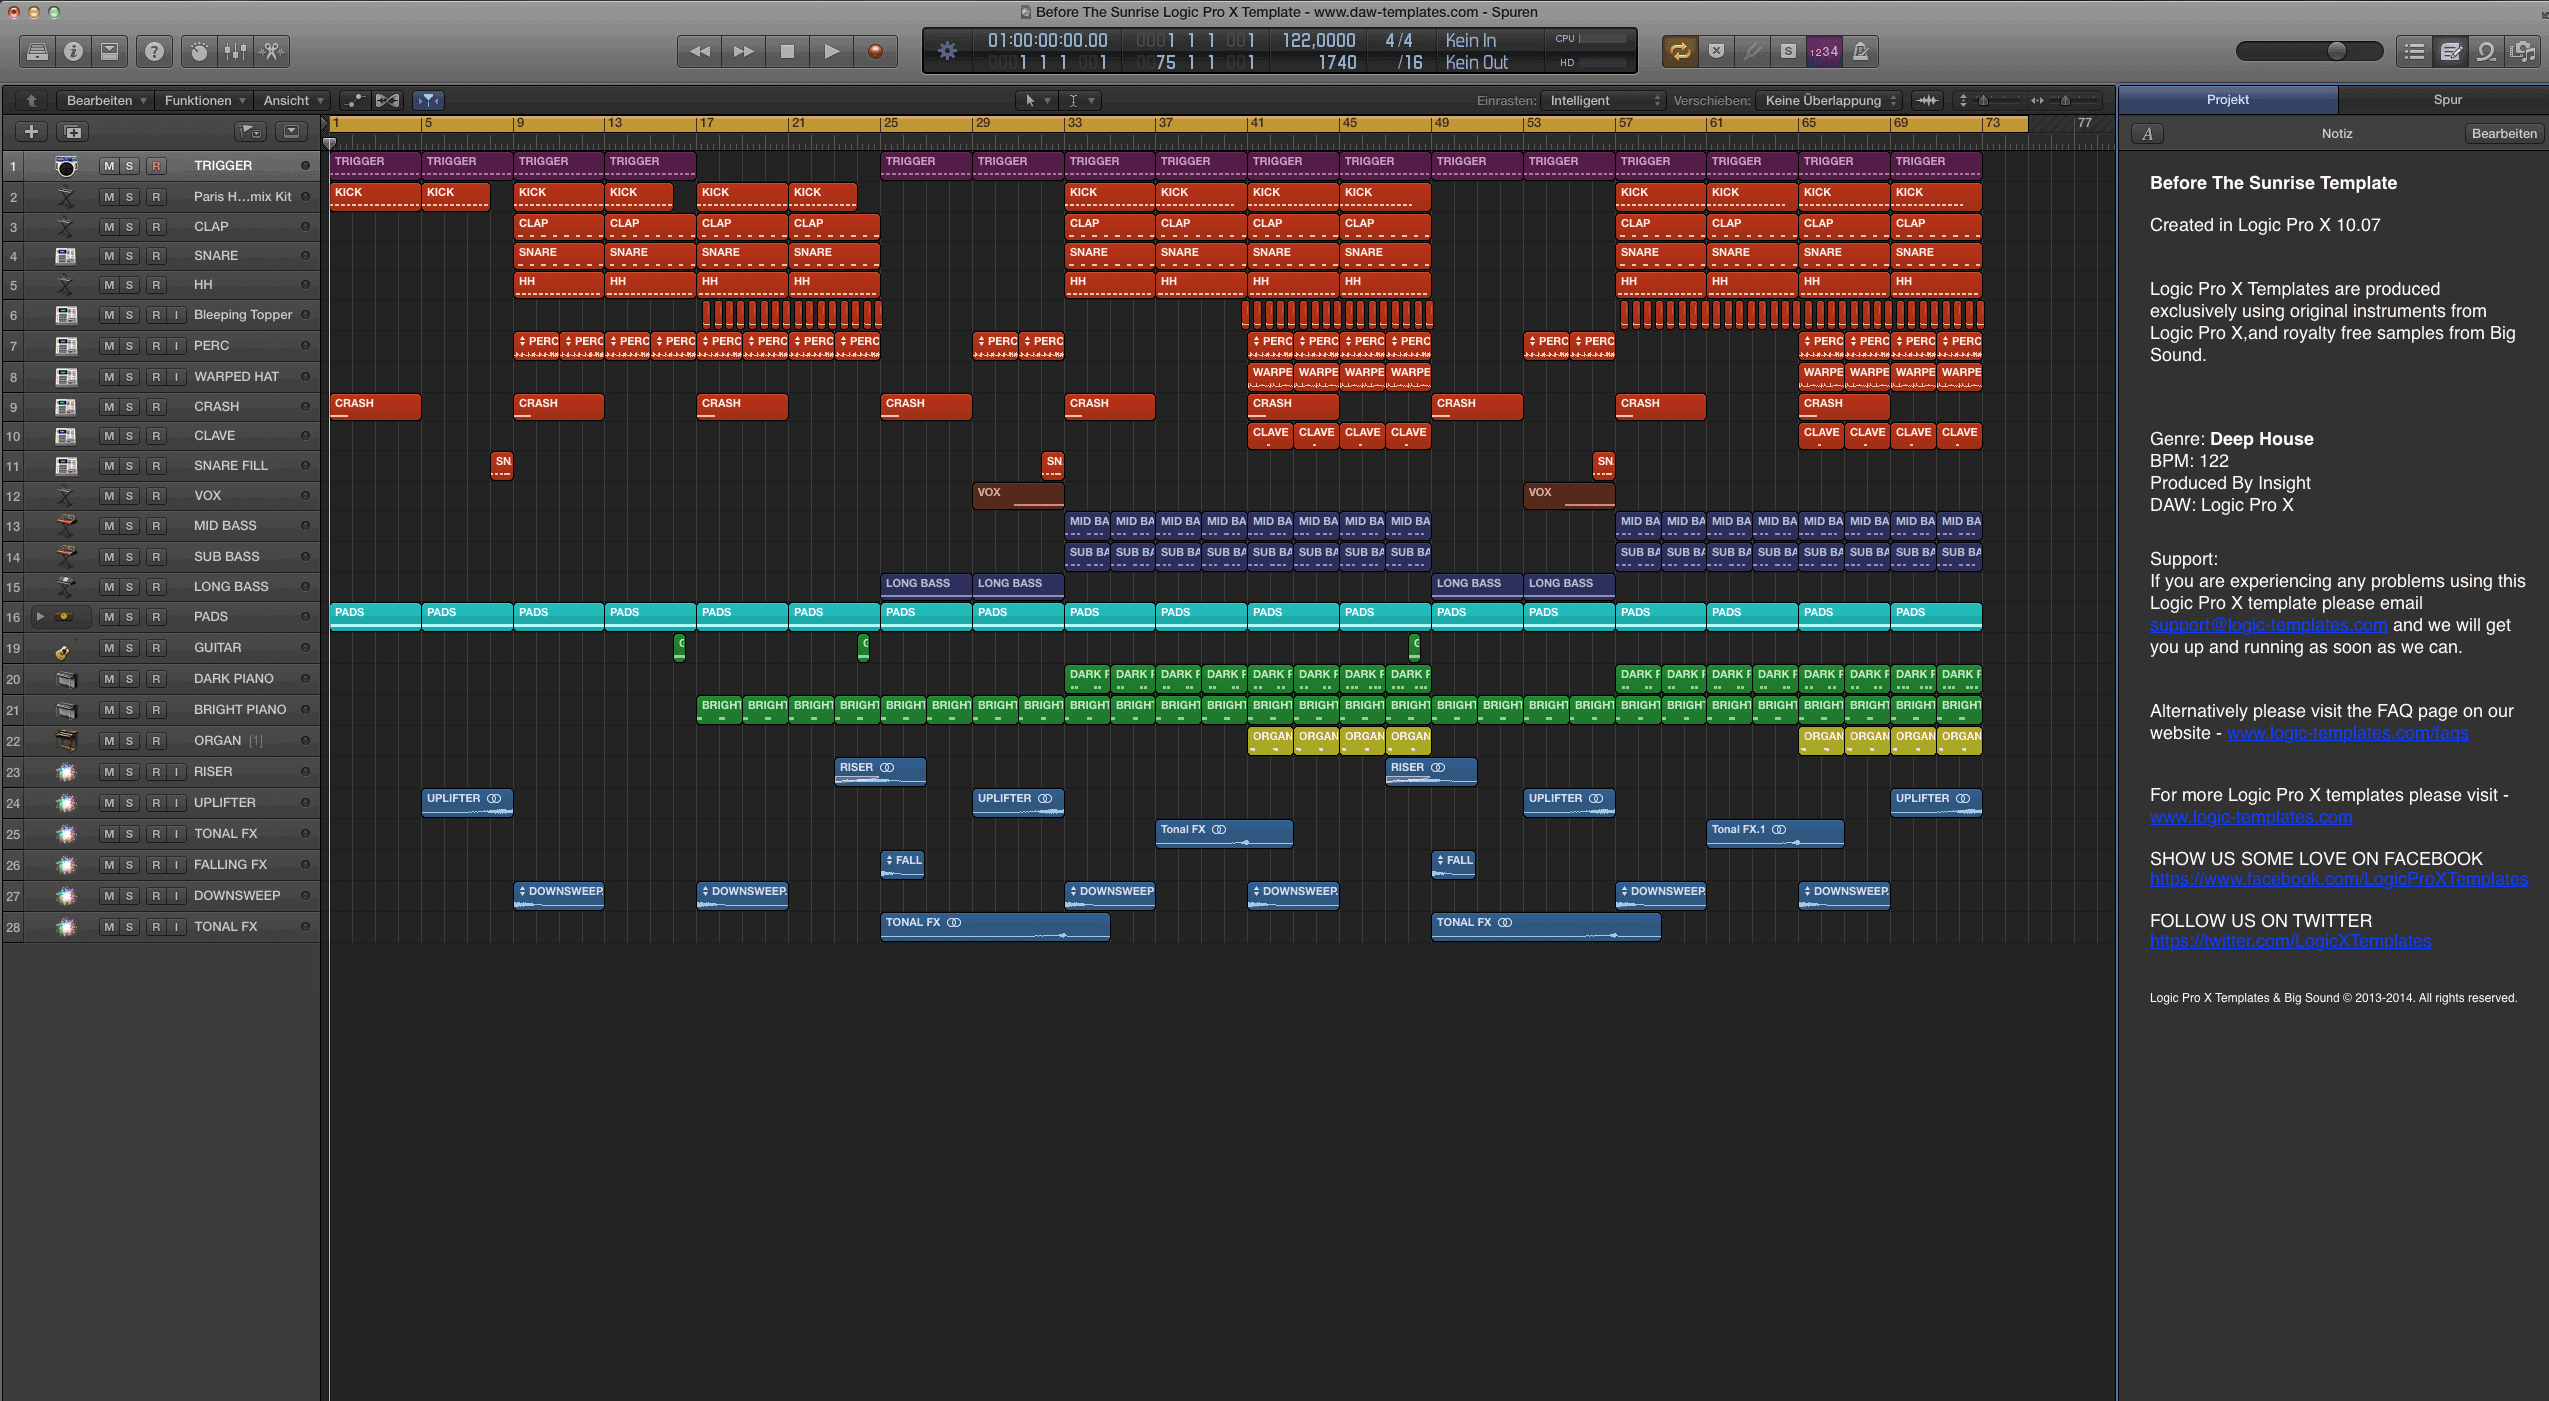 Before The Sunrise Logic Pro X Template